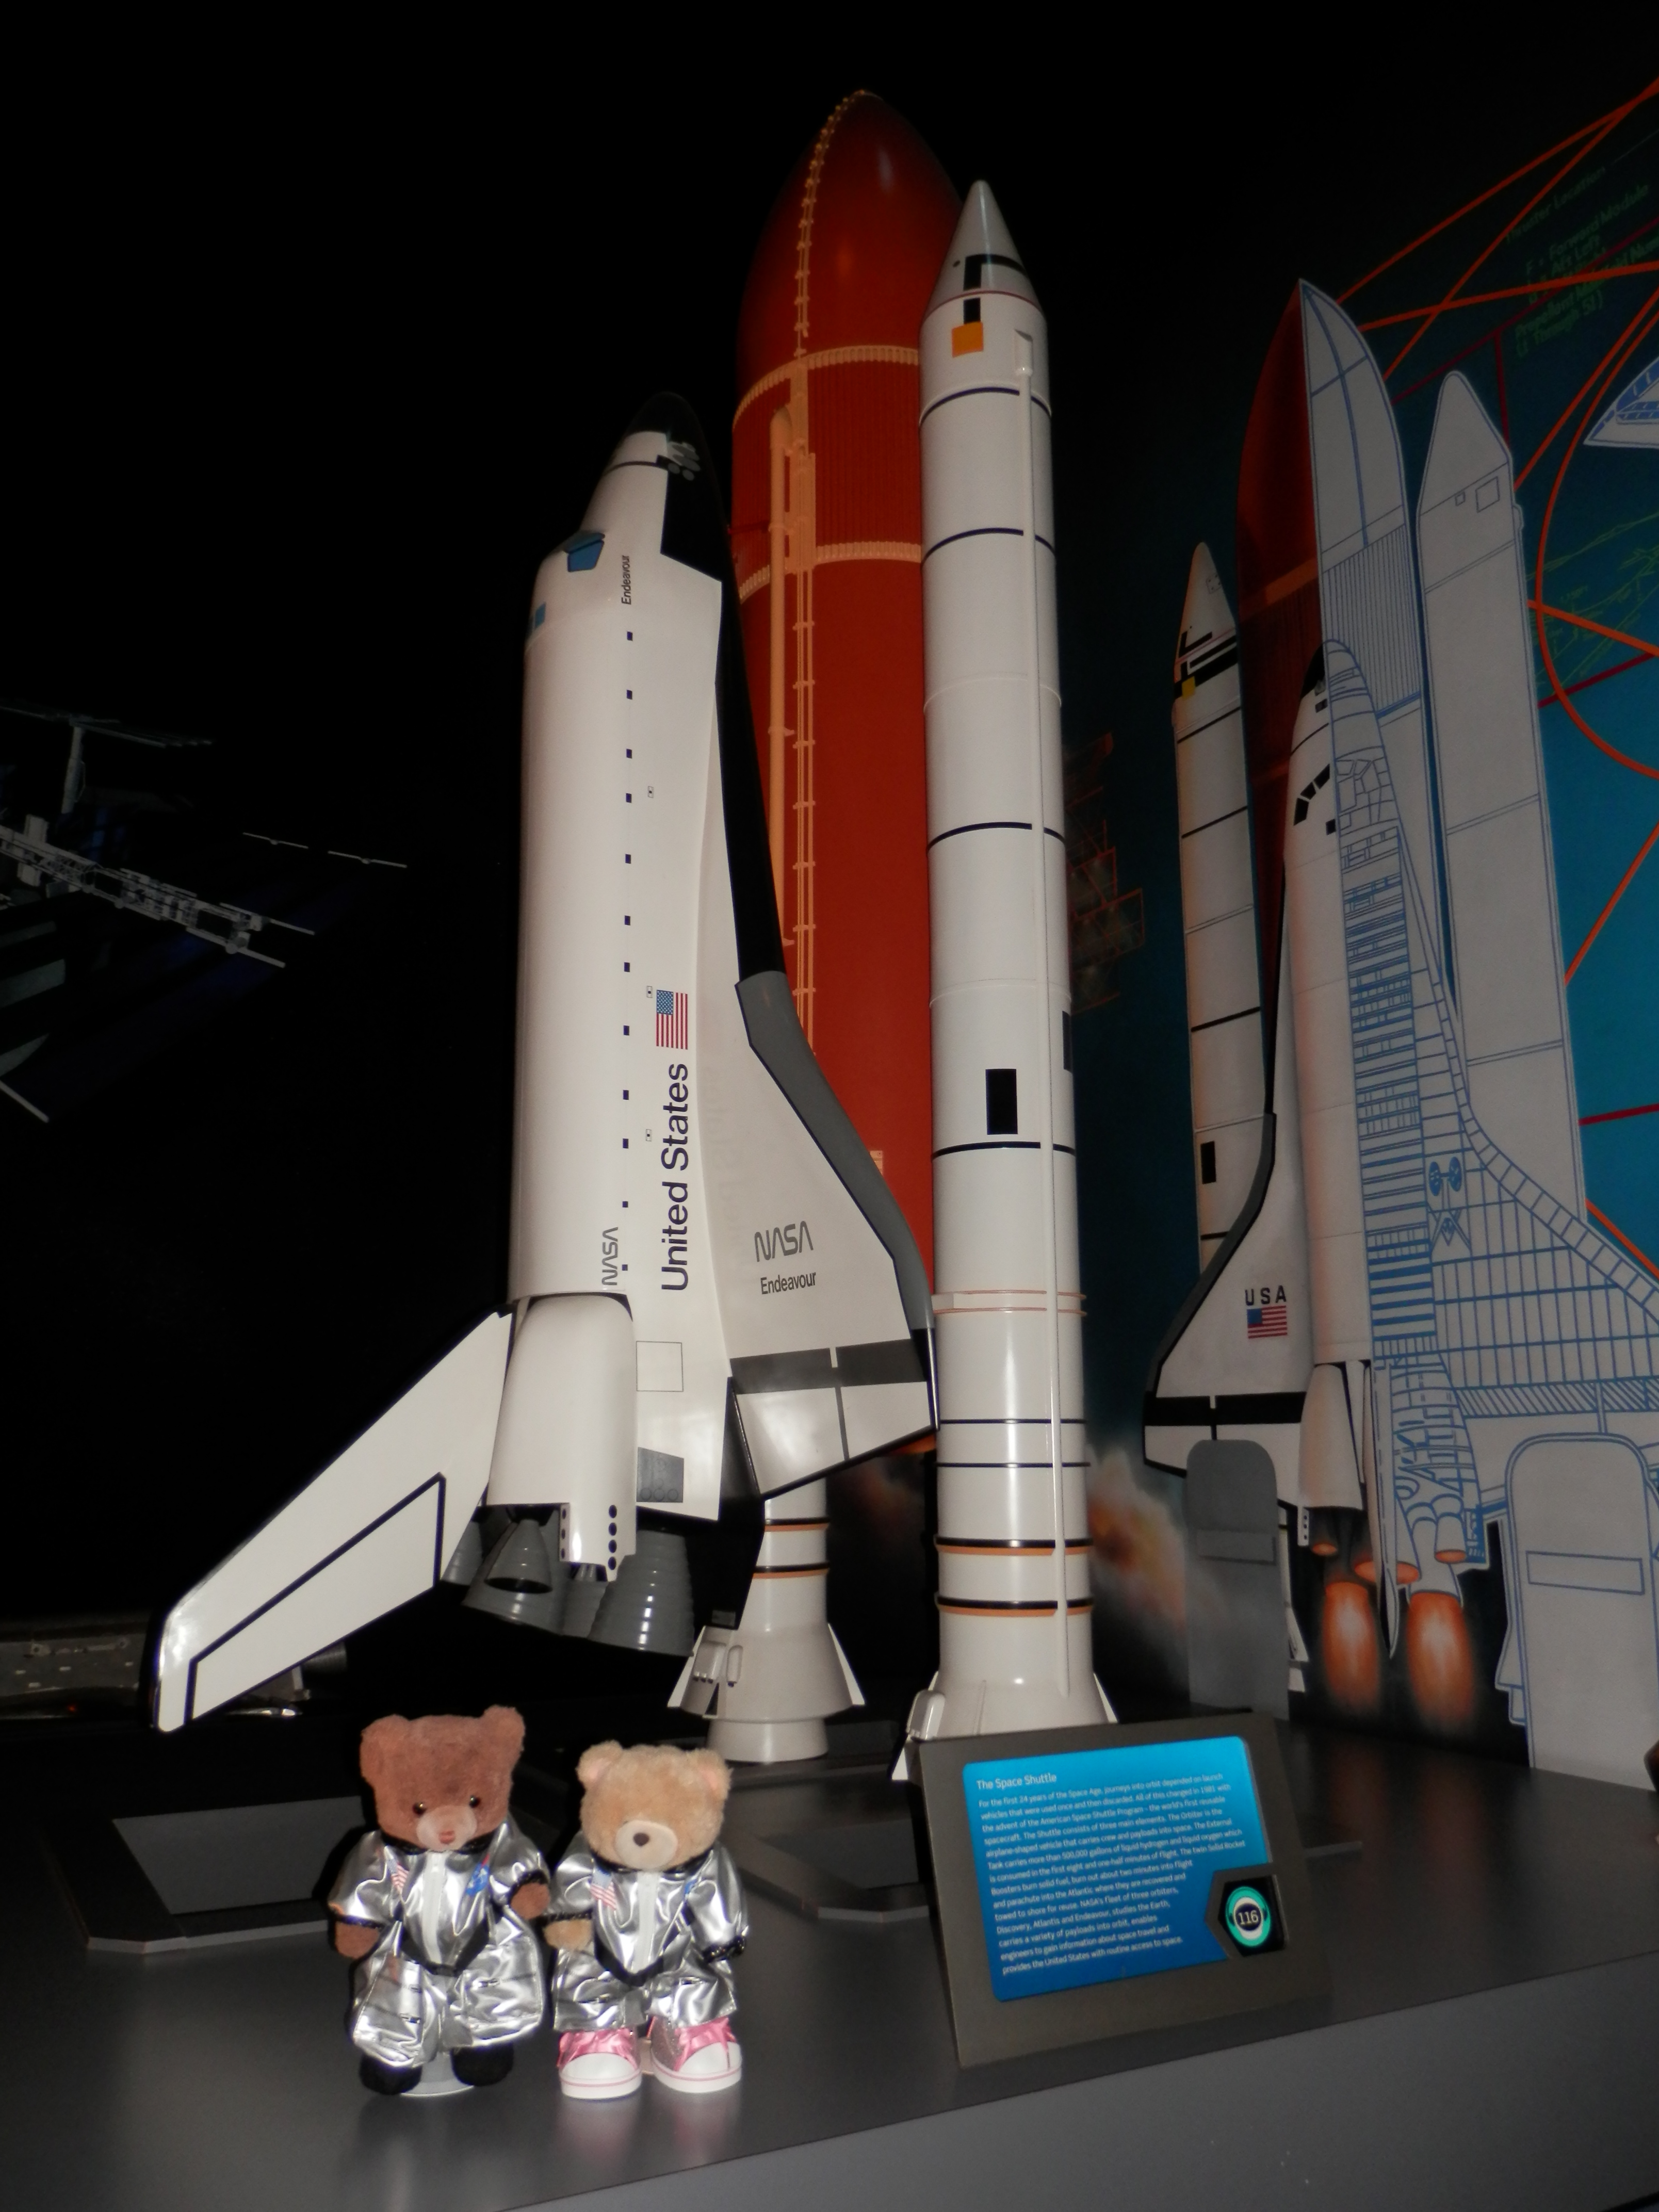 space shuttle program history - photo #12